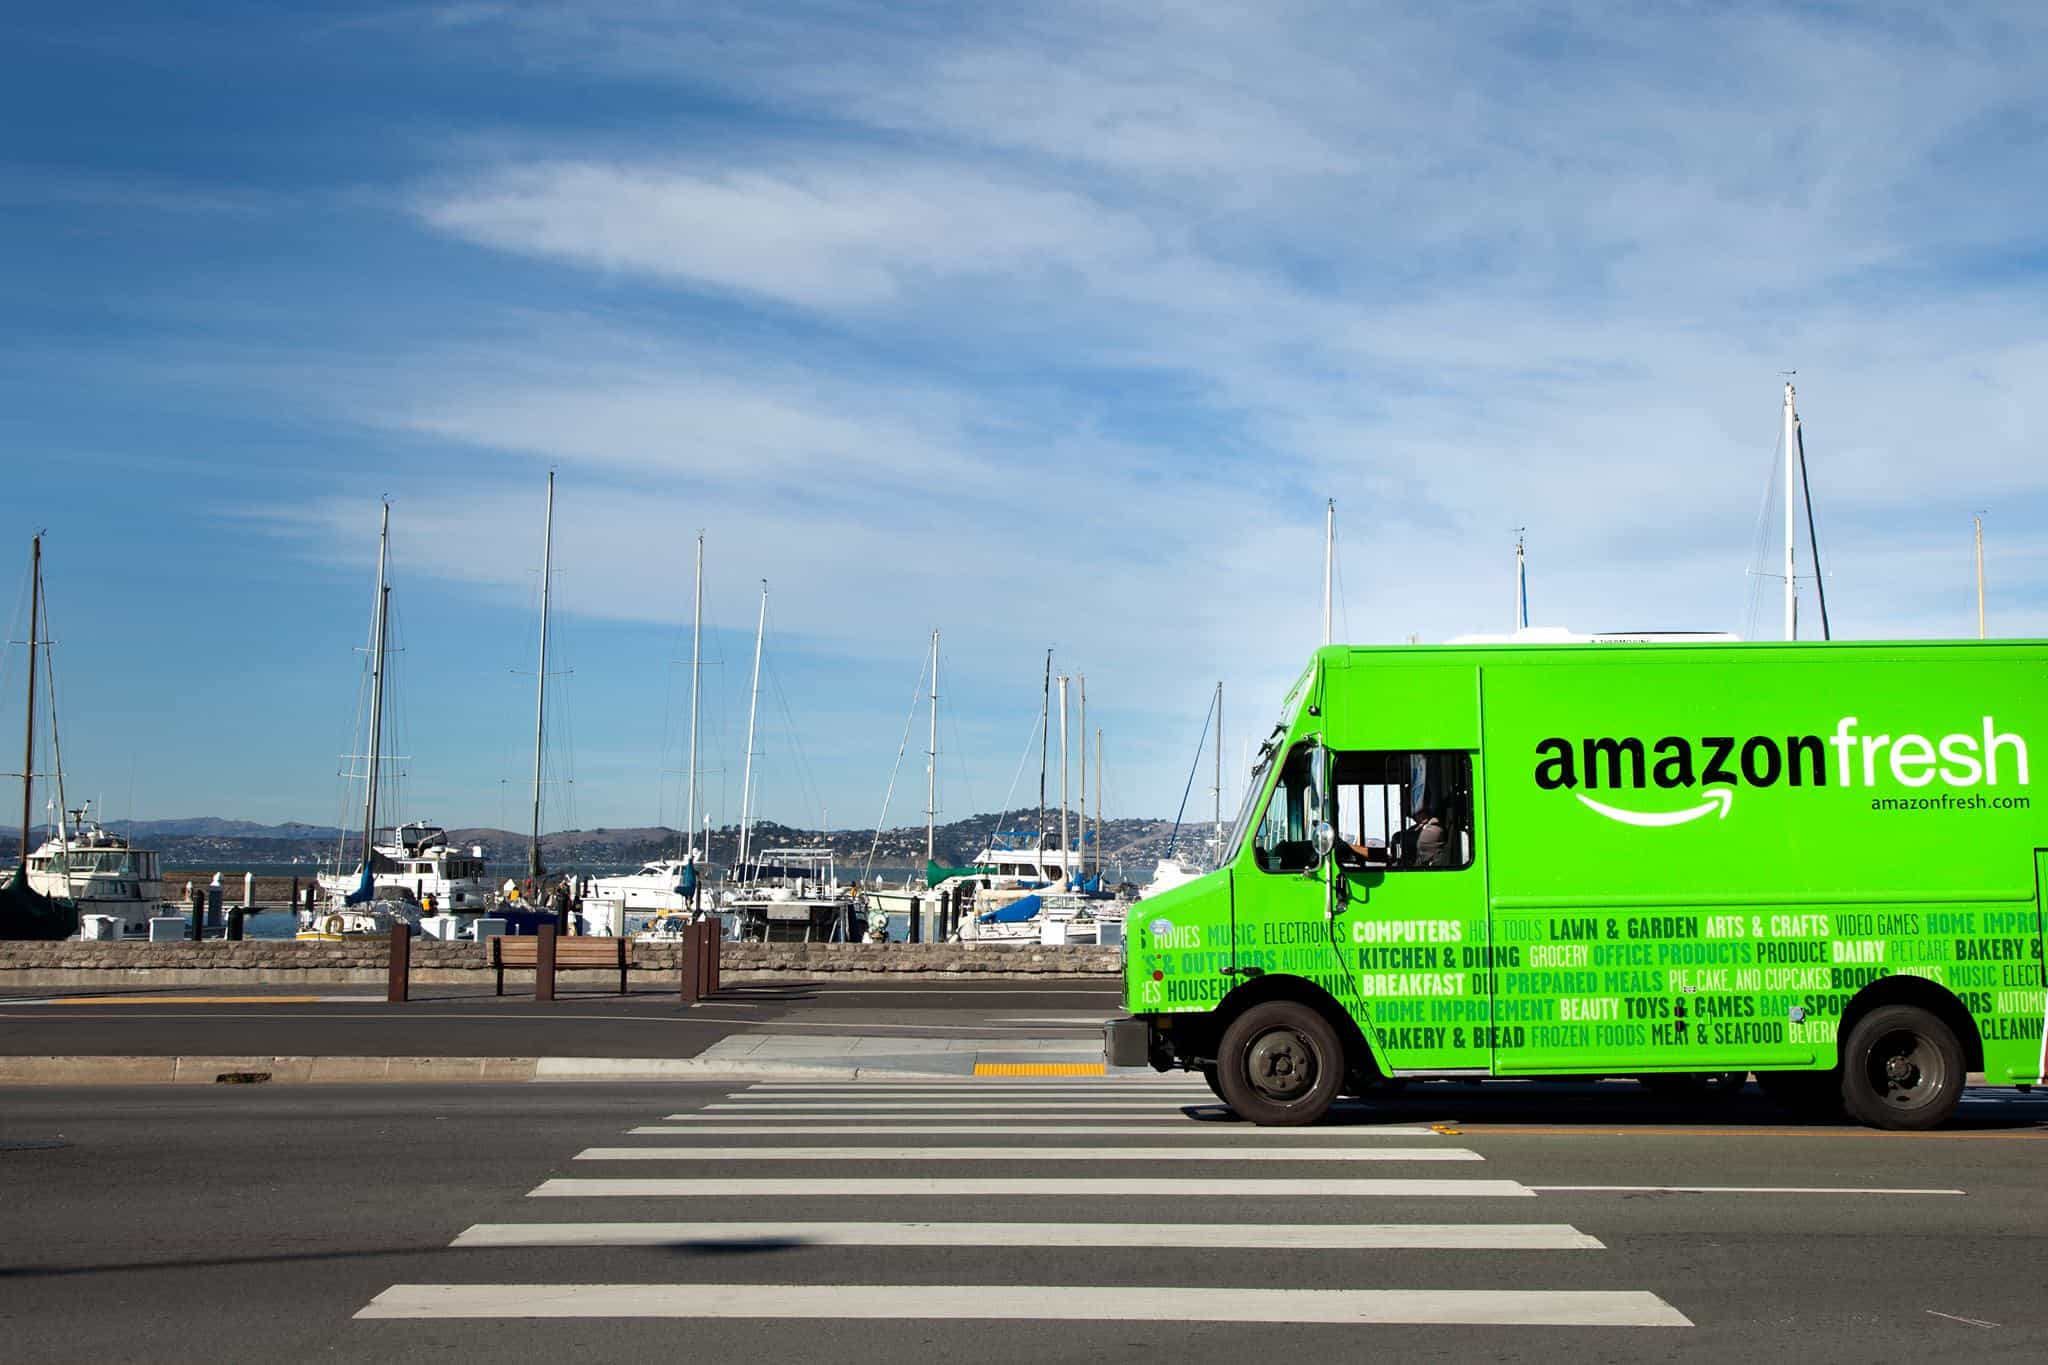 Amazon Fresh Food Fulfillment Service